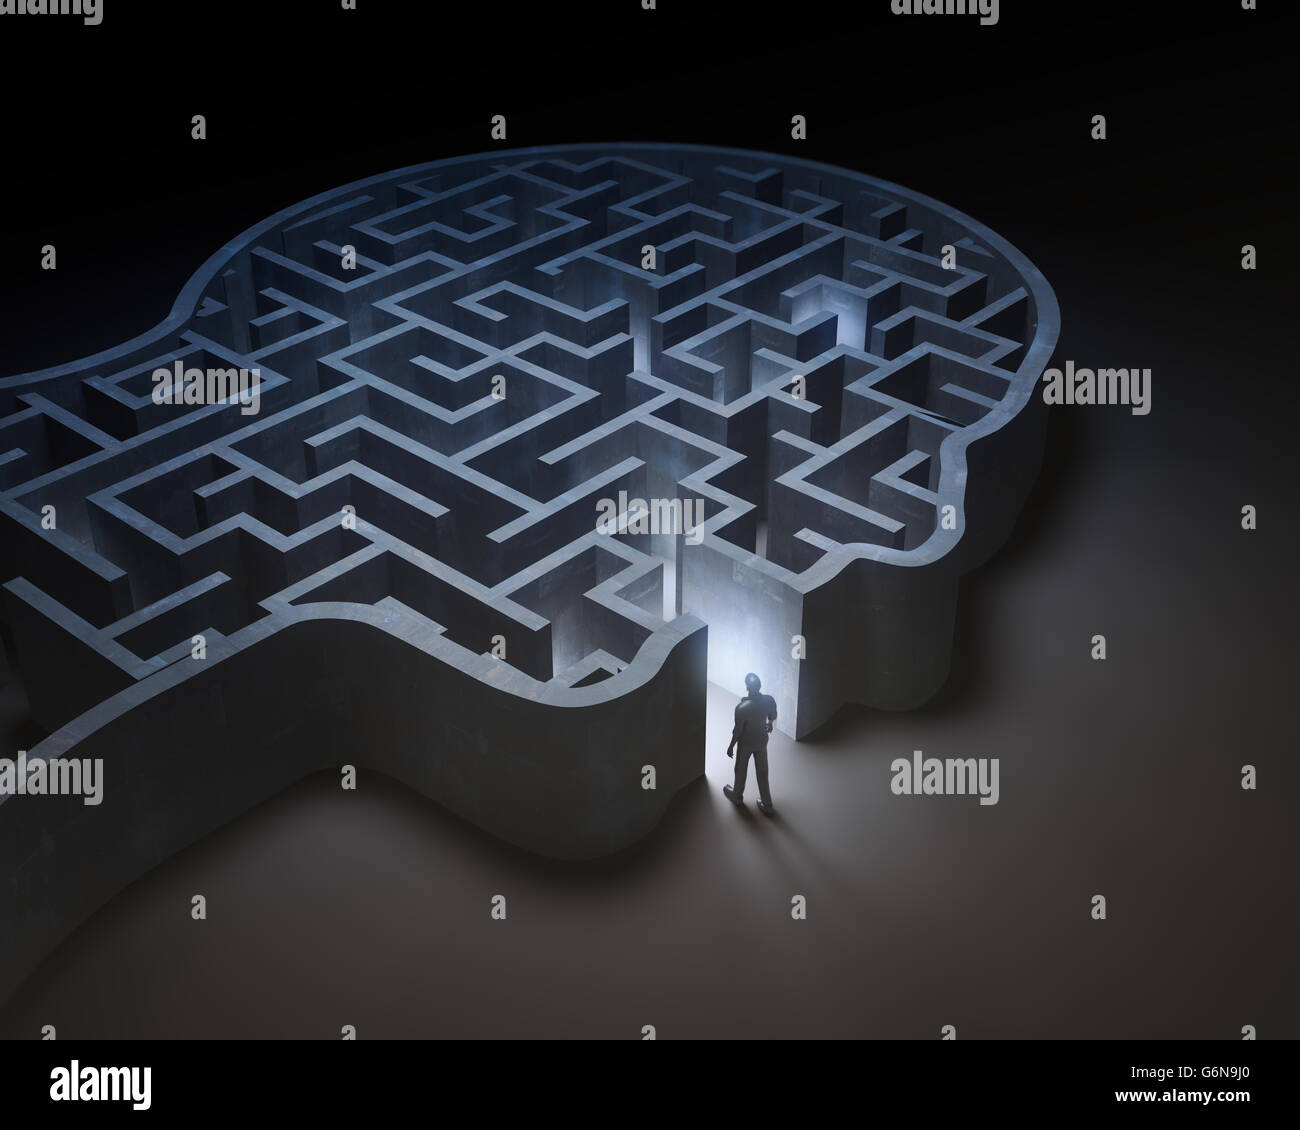 Man entering a maze inside a head - 3D illustration - Stock Image